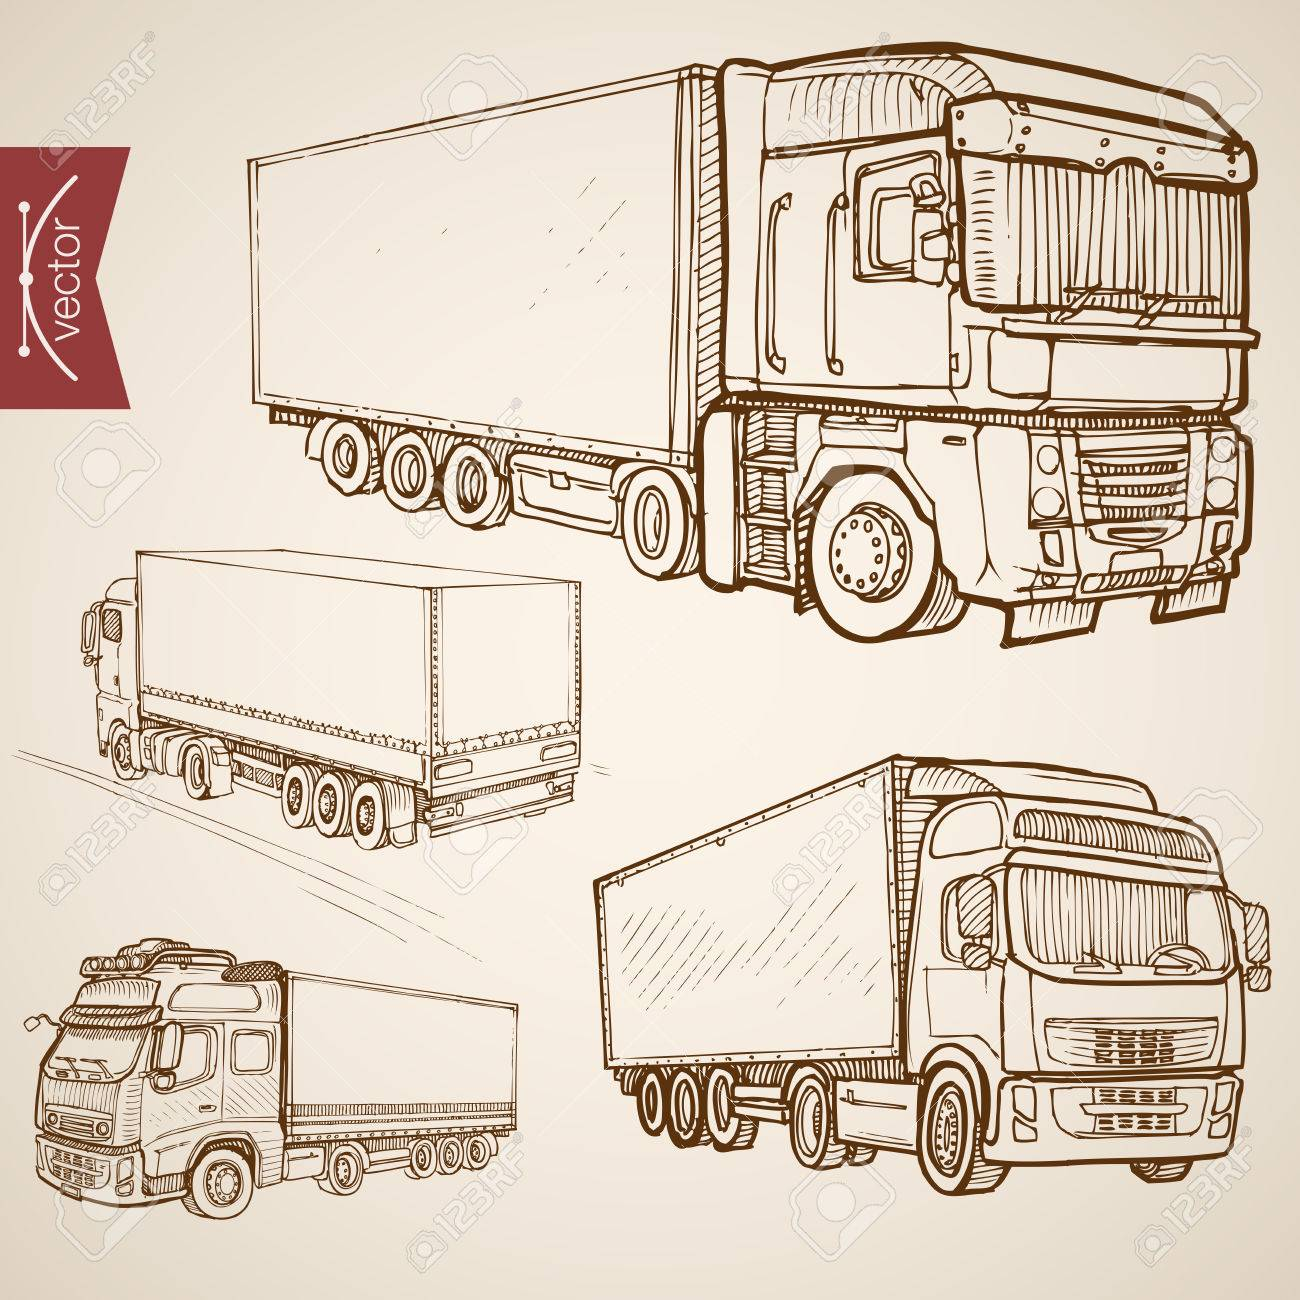 Engraving Vintage Hand Drawn Vector Delivery Transport Collection Royalty Free Cliparts Vectors And Stock Illustration Image 60587951